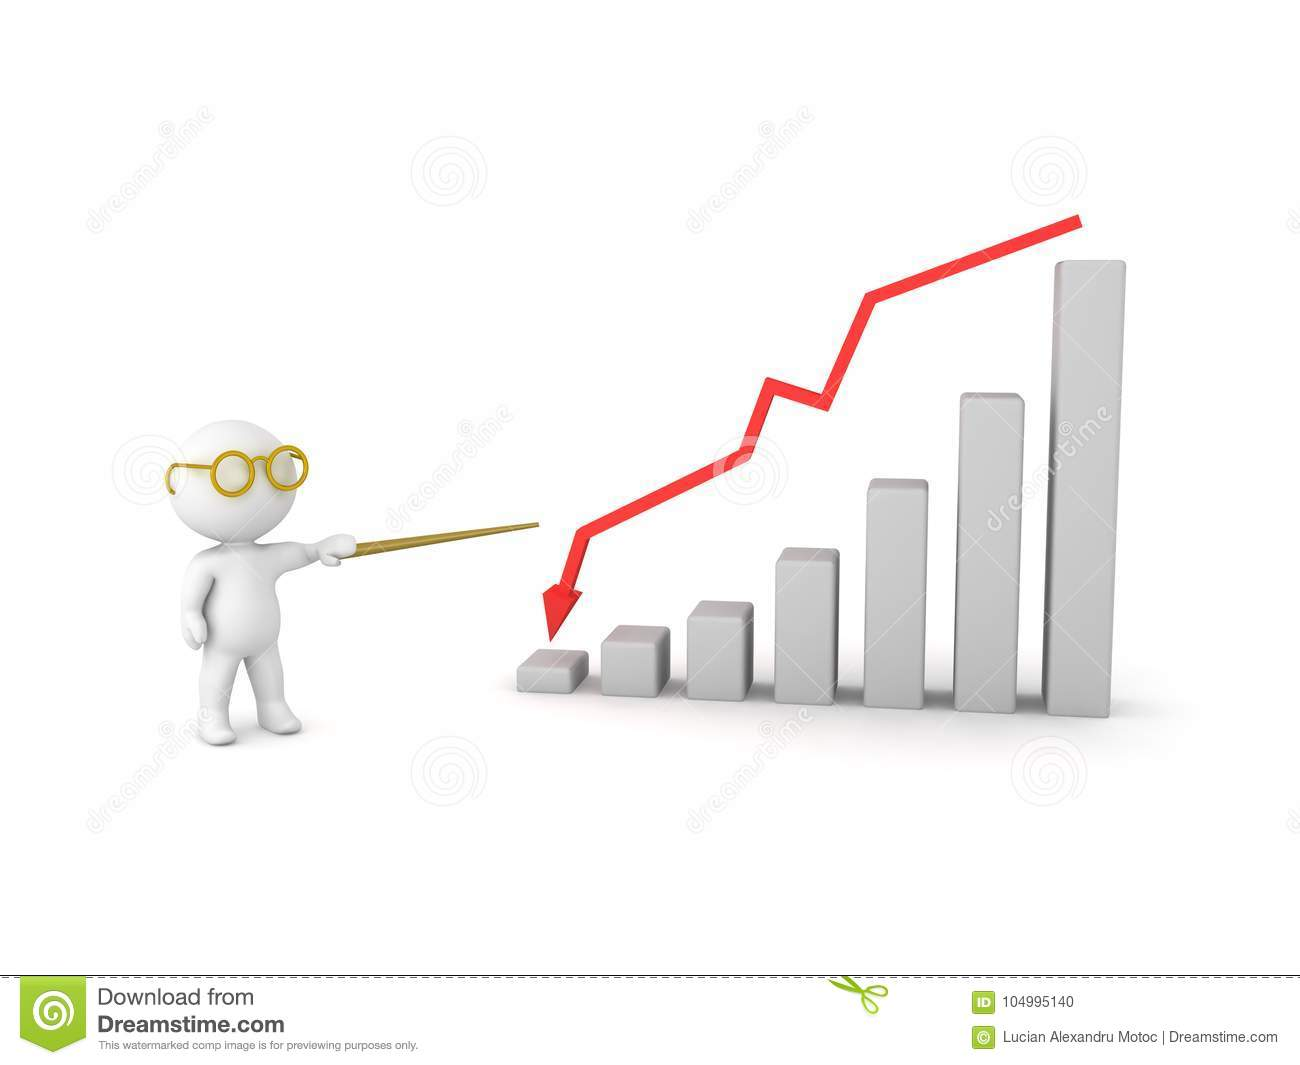 3D Character pointing at graph showing decline